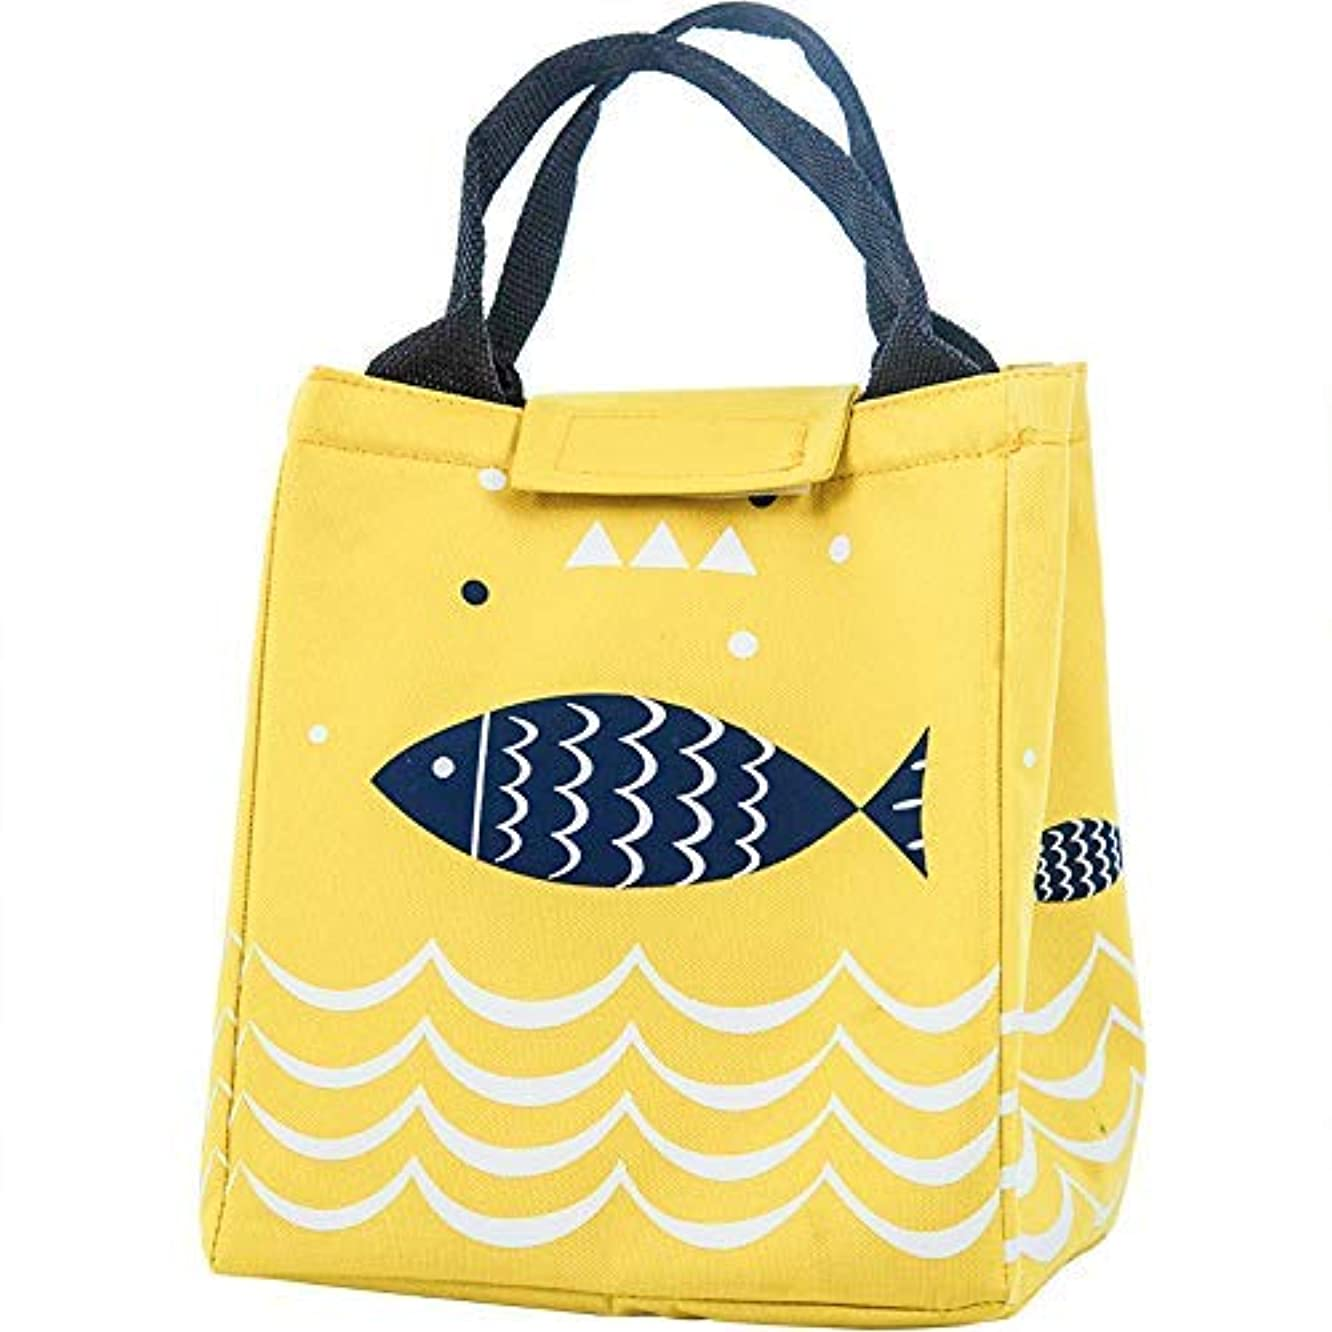 Naranqa Insulated Lunch Bag Reusable Lunch Box Cute Canvas Fabric with Aluminum Foil, Printed Lunch Tote Handbag Fordable for Women,Men,School, Office (Yellow Fish)